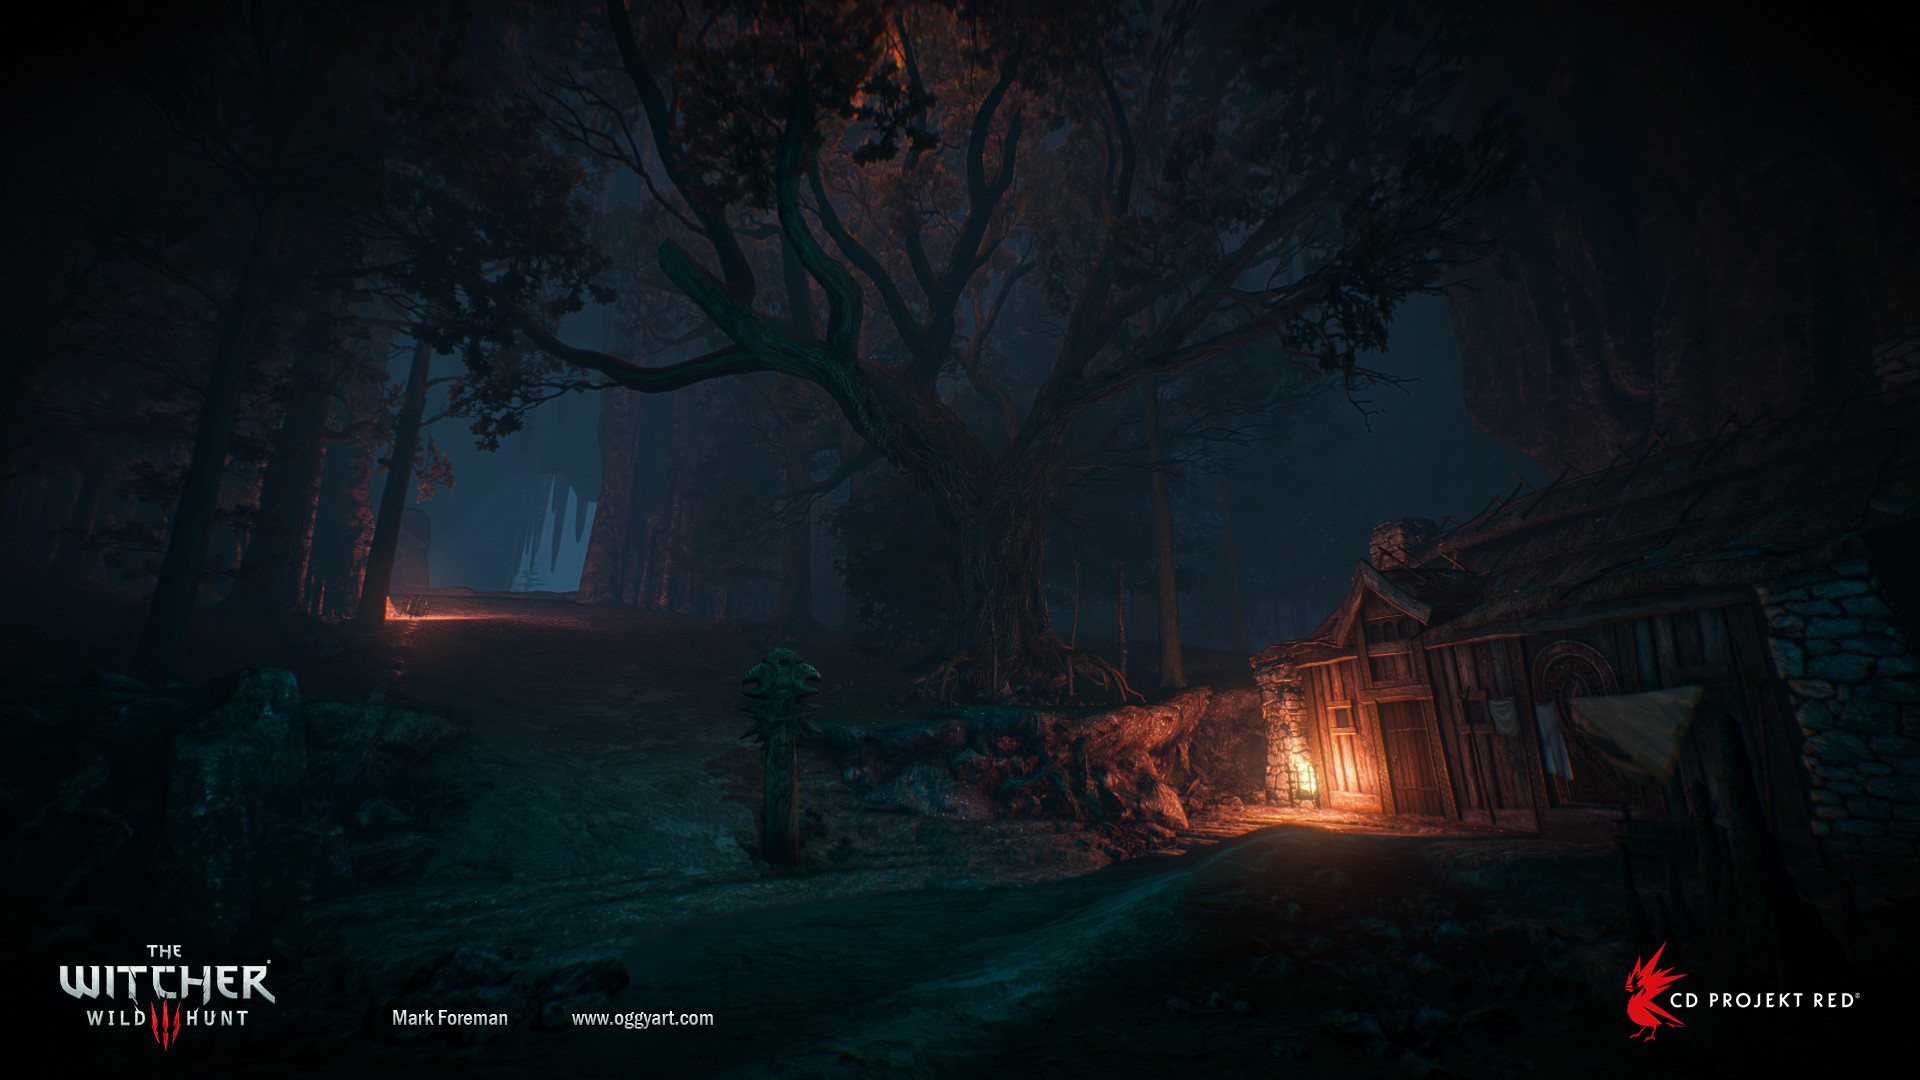 Night Time The Witcher 3 Wild Hunt Wallpaper 49251 Baltana